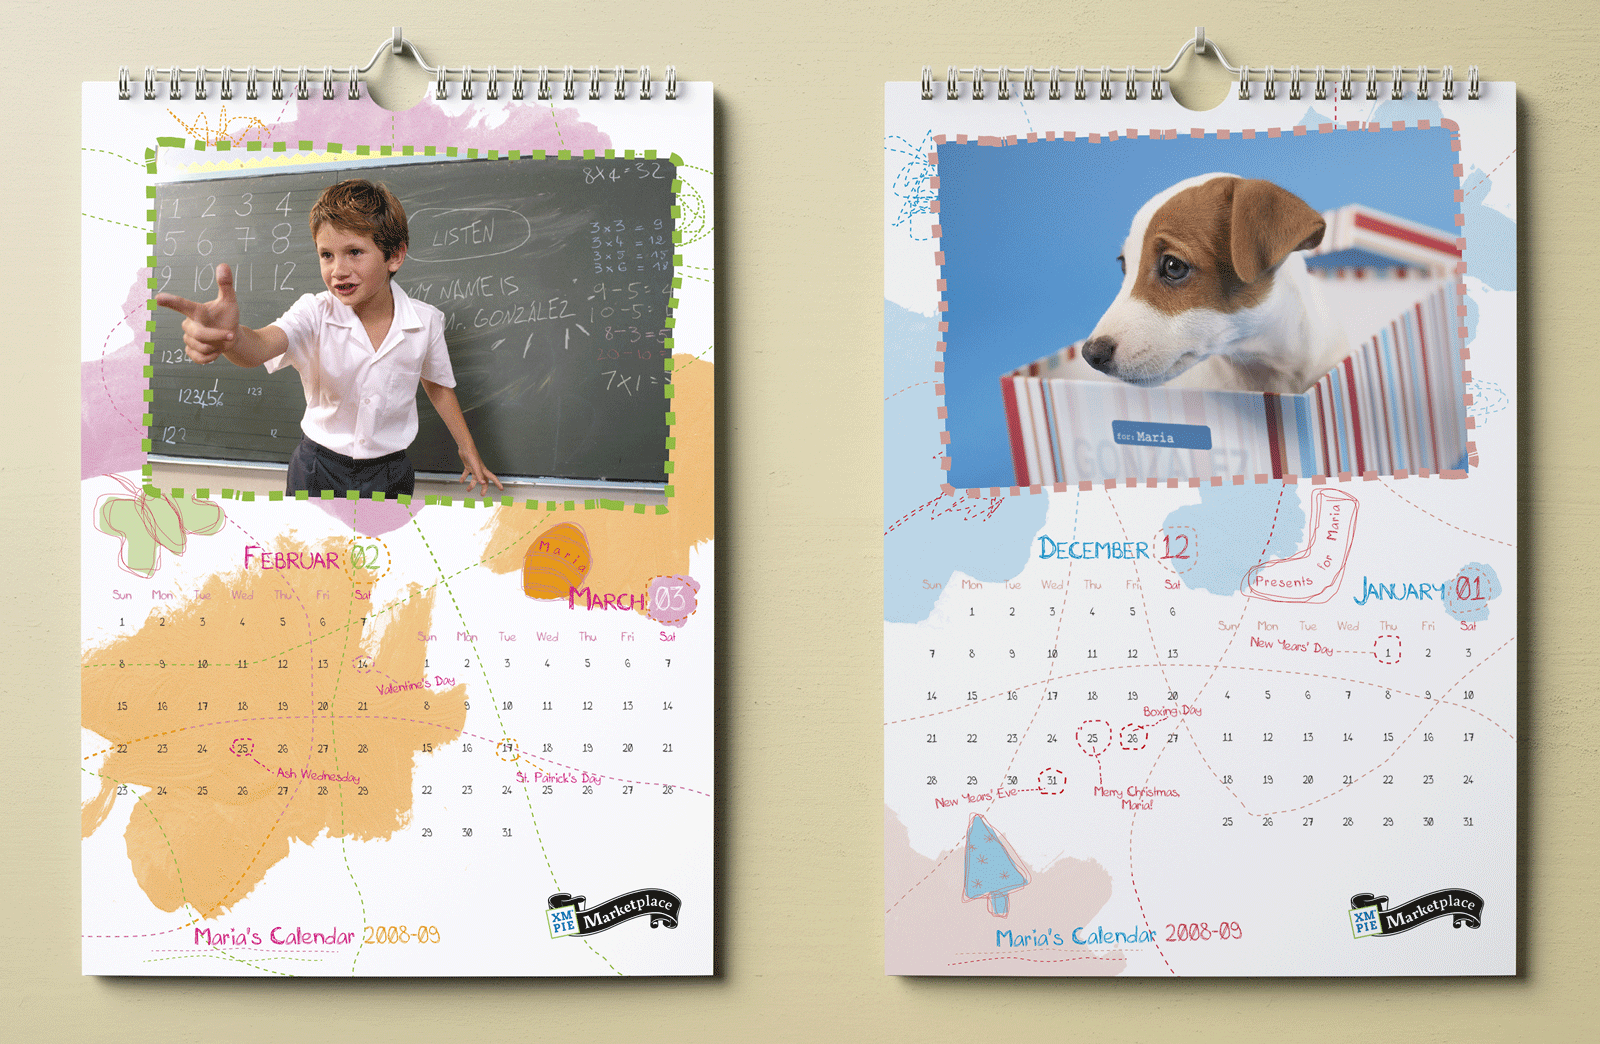 http://bigeyes.co.il/wp-content/uploads/2019/07/kids-calendar-3.png